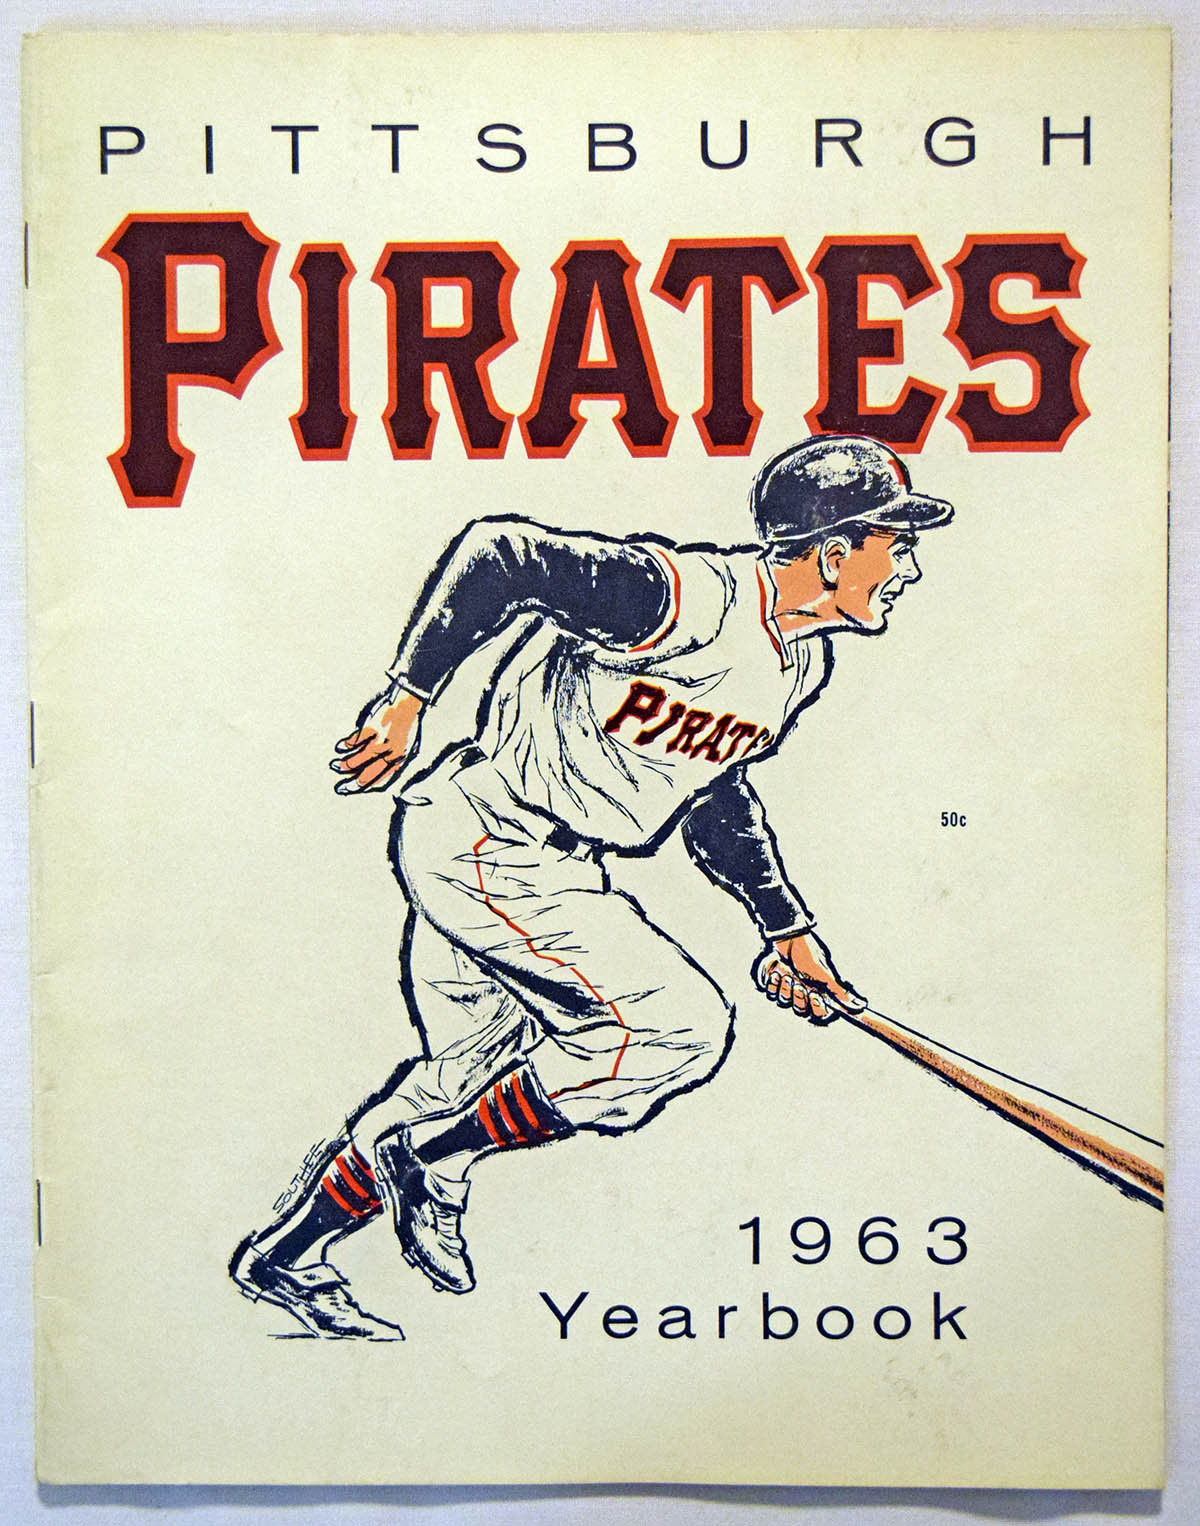 Lot #1748 1963 Yearbook  Pittsburgh Pirates Cond: Ex-Mt+